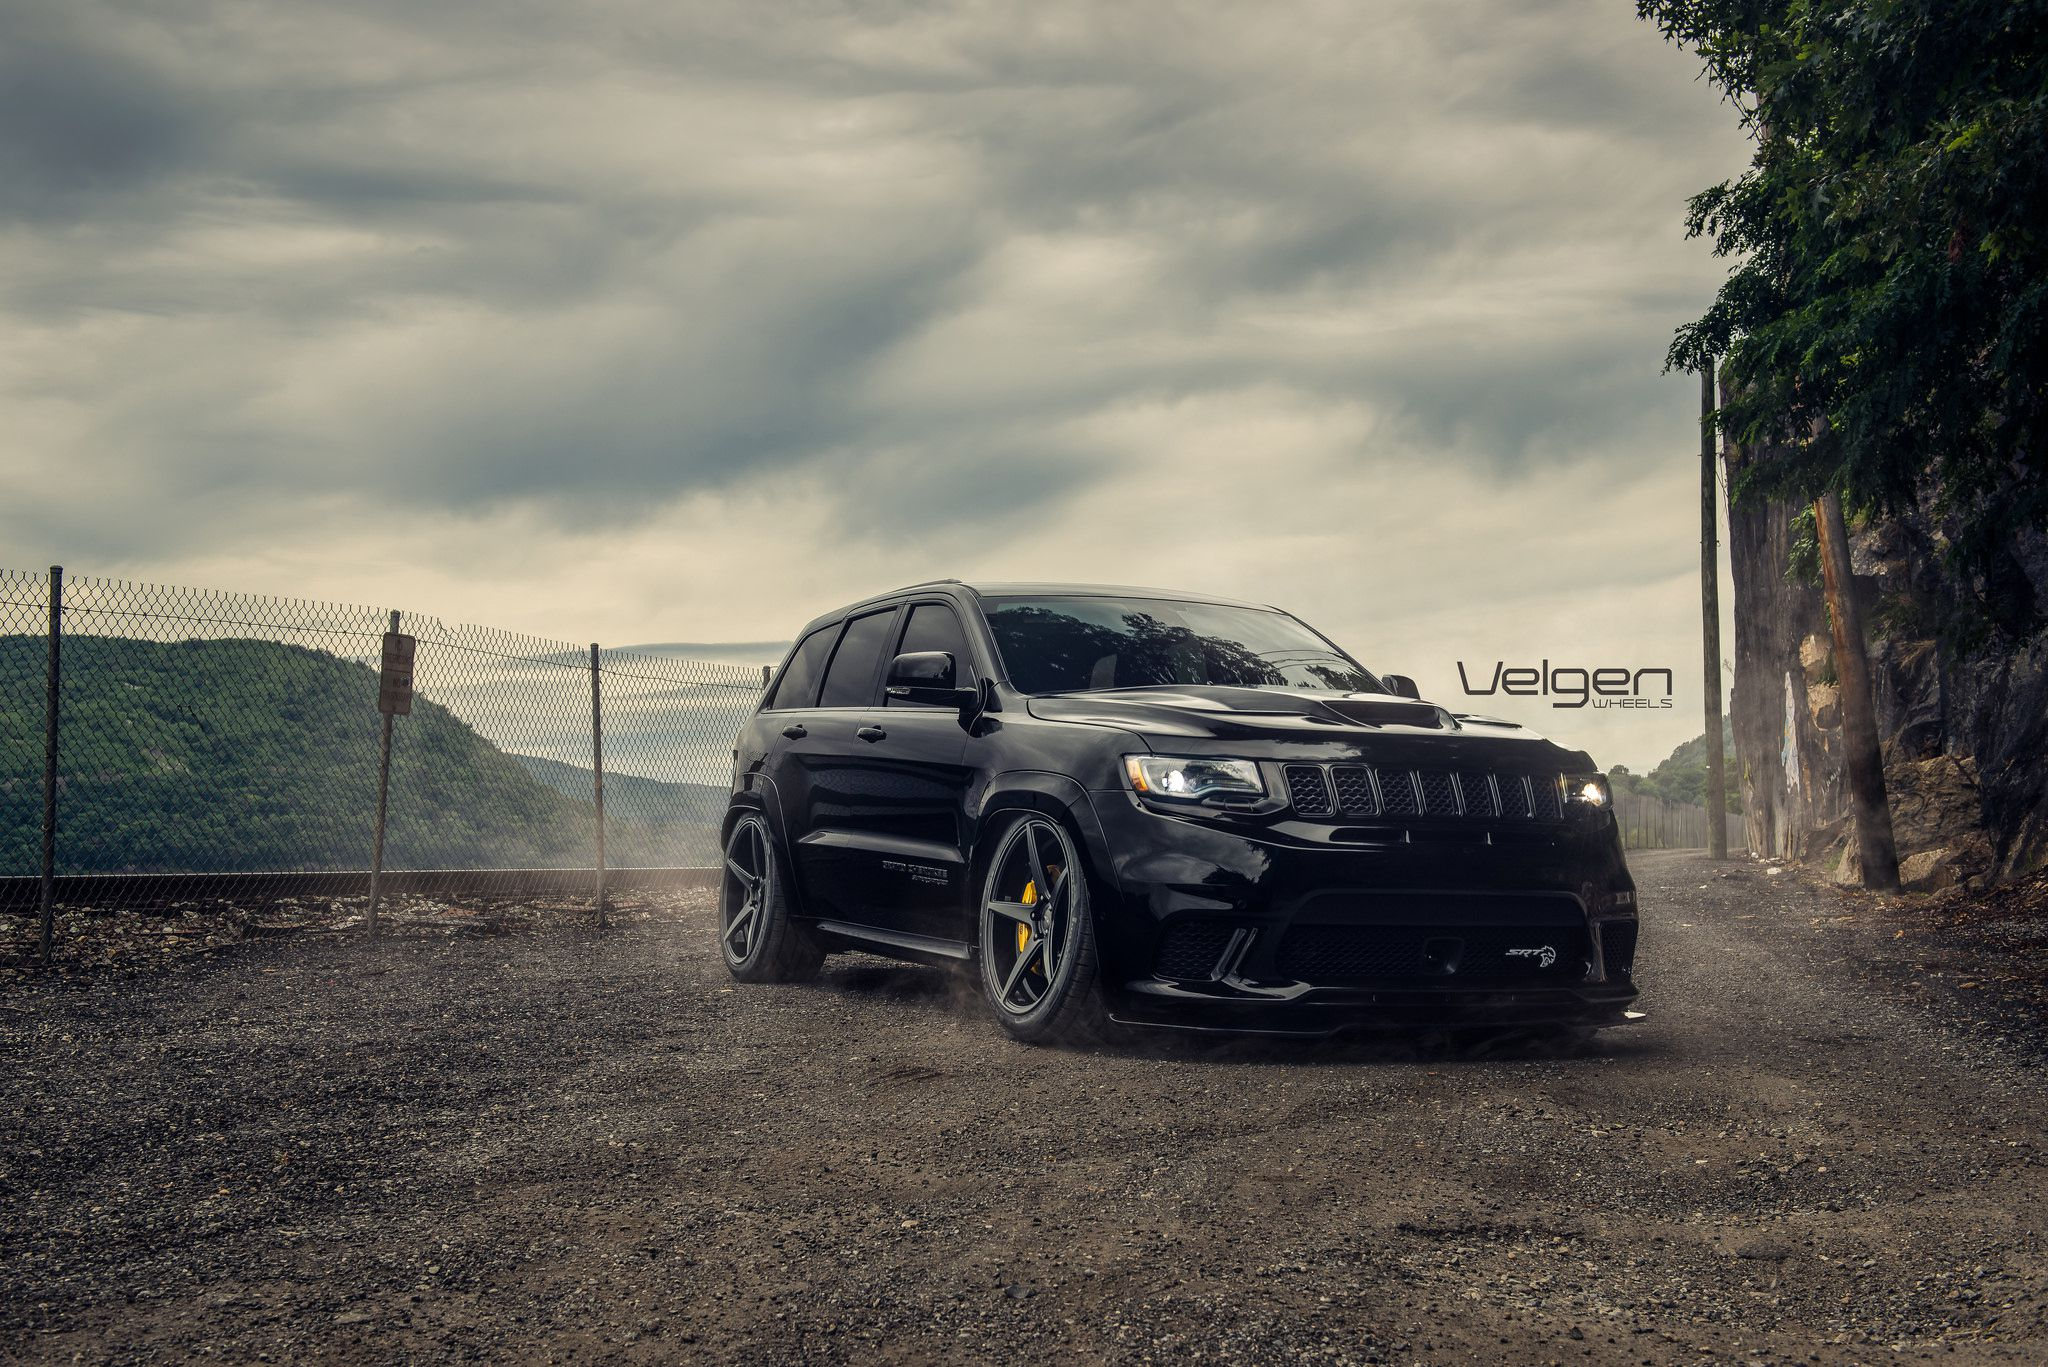 Jeep SRT, black monster SUV